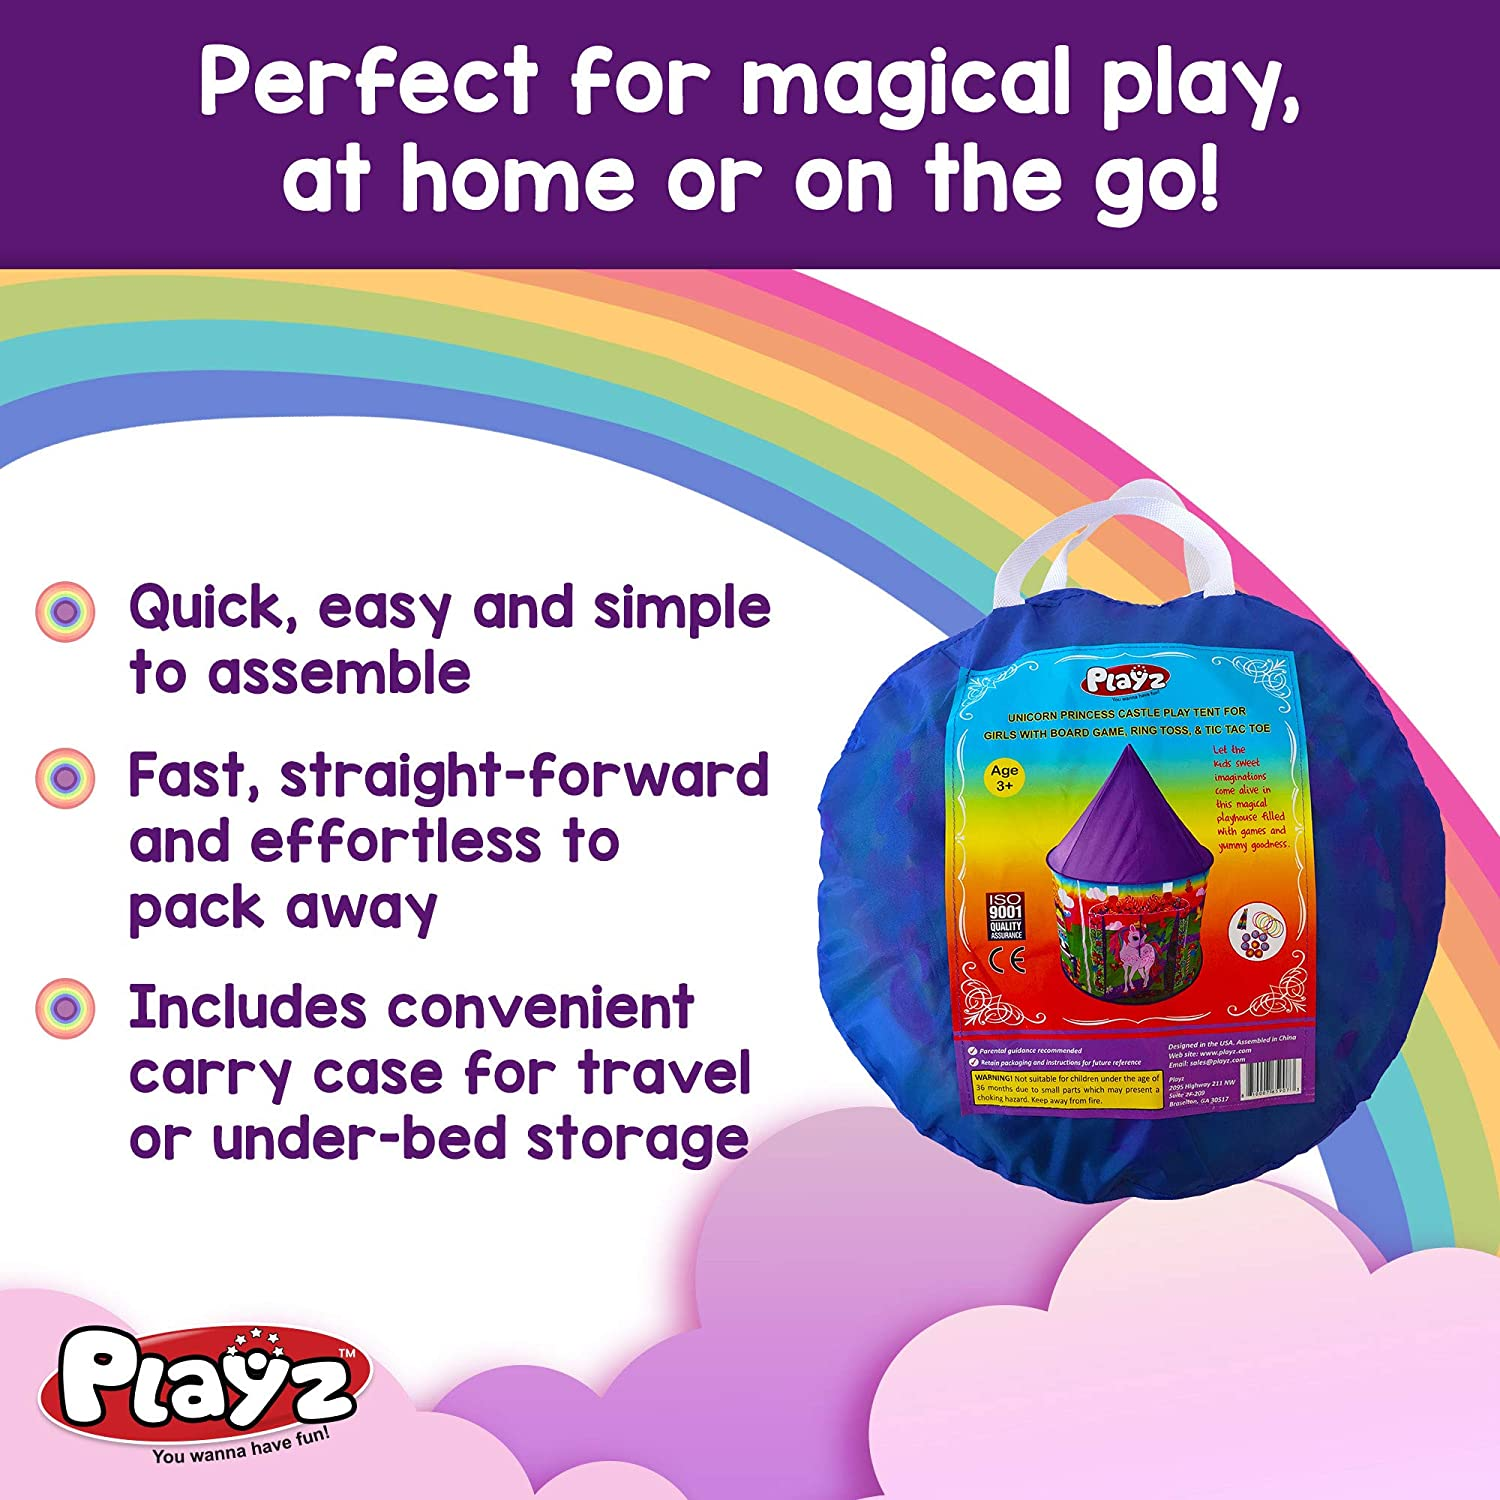 Unicorn Toys for 2 Year Old Girls Indoor Pop up Playhouse Set Gifts for Kids Birthday Party Favors Toddlers Age 1-3 3-5 4-7 Princess Tent with Unicorn Ring Toss Game Kids Castle Play Tent for Girls